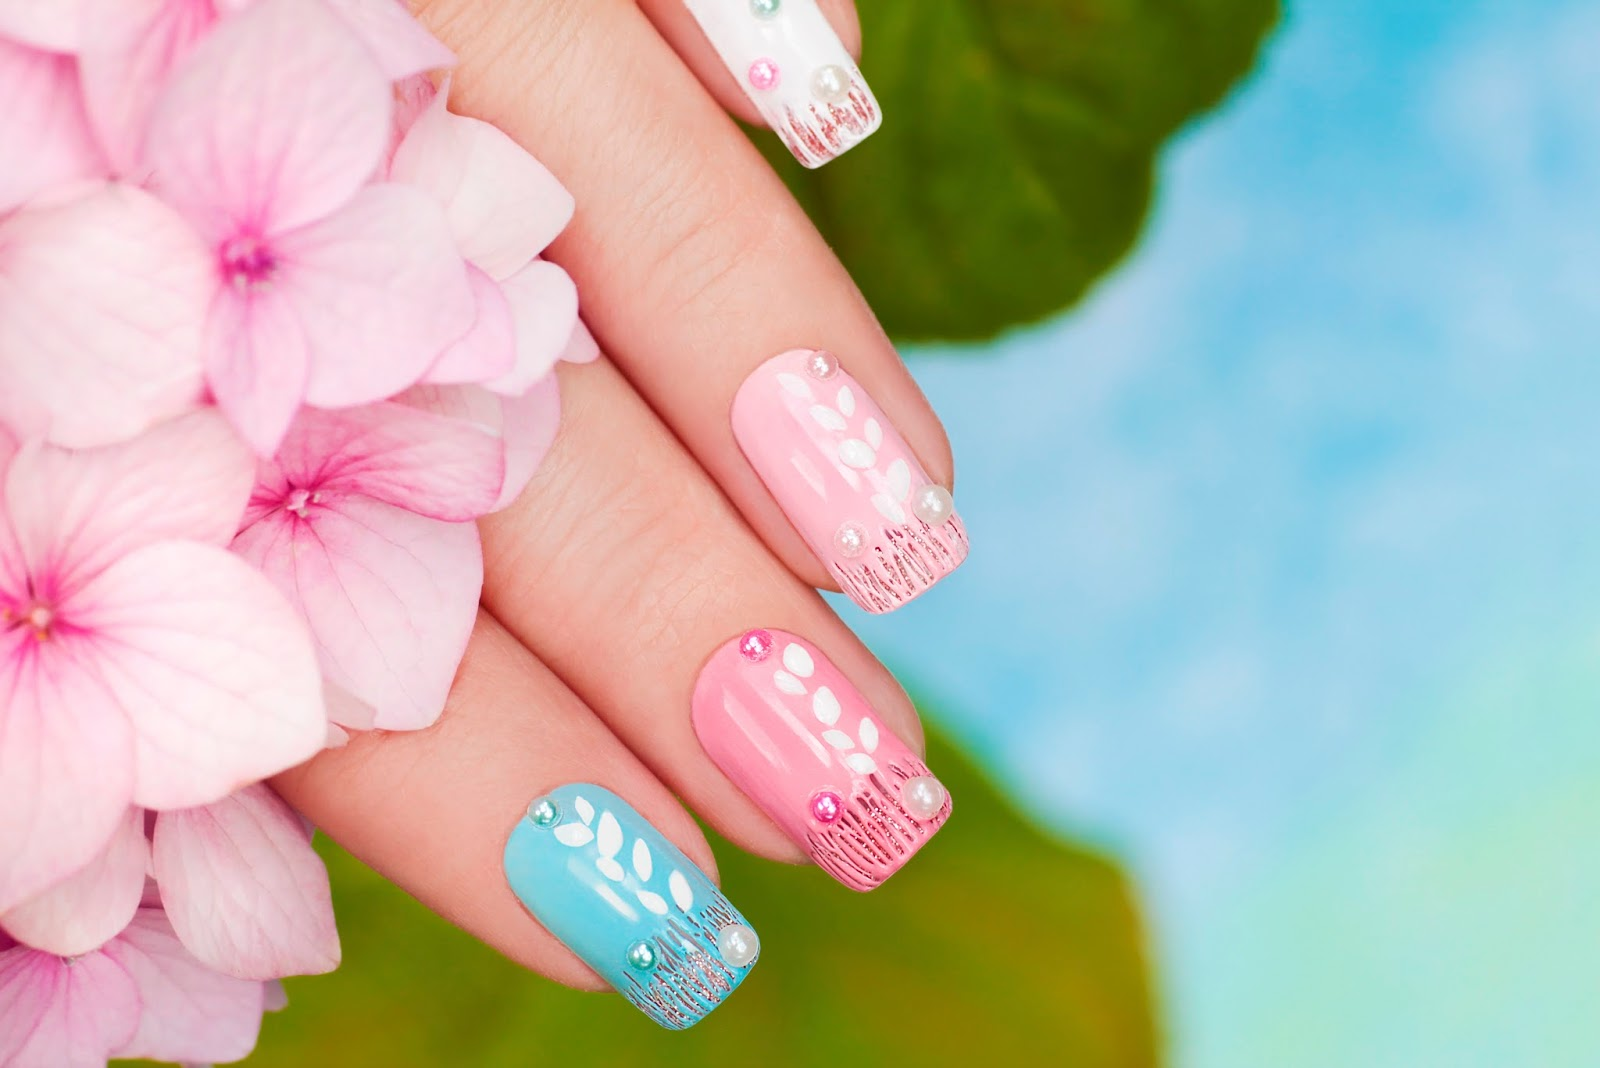 Le Chic Nails & Spa